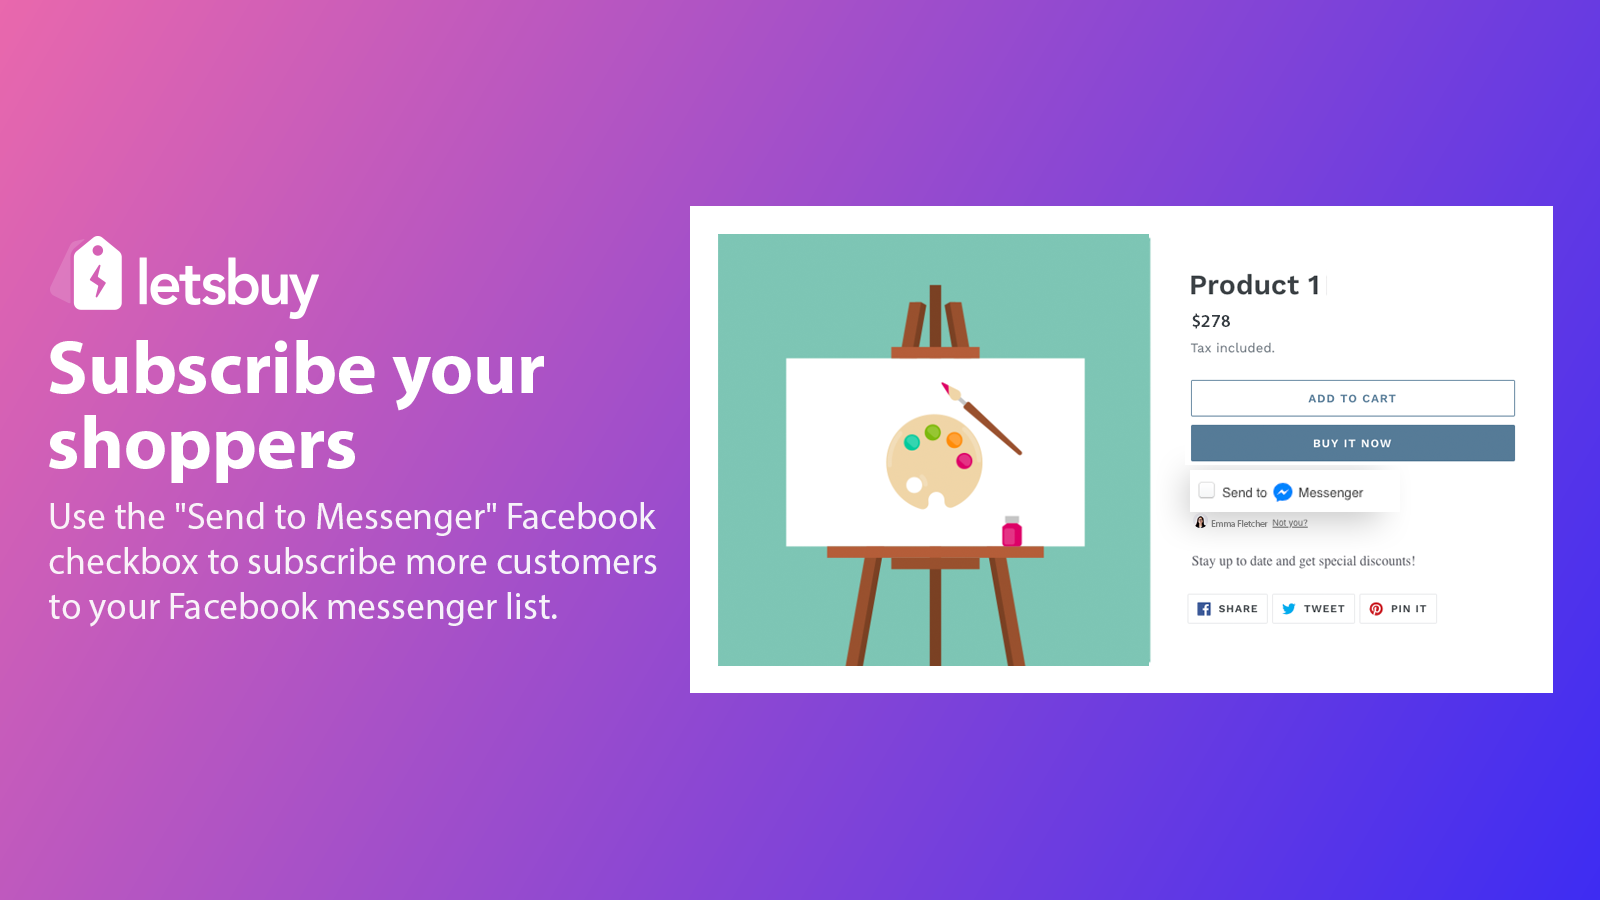 Subscribe your shoppers with Send to Messenger checkbox